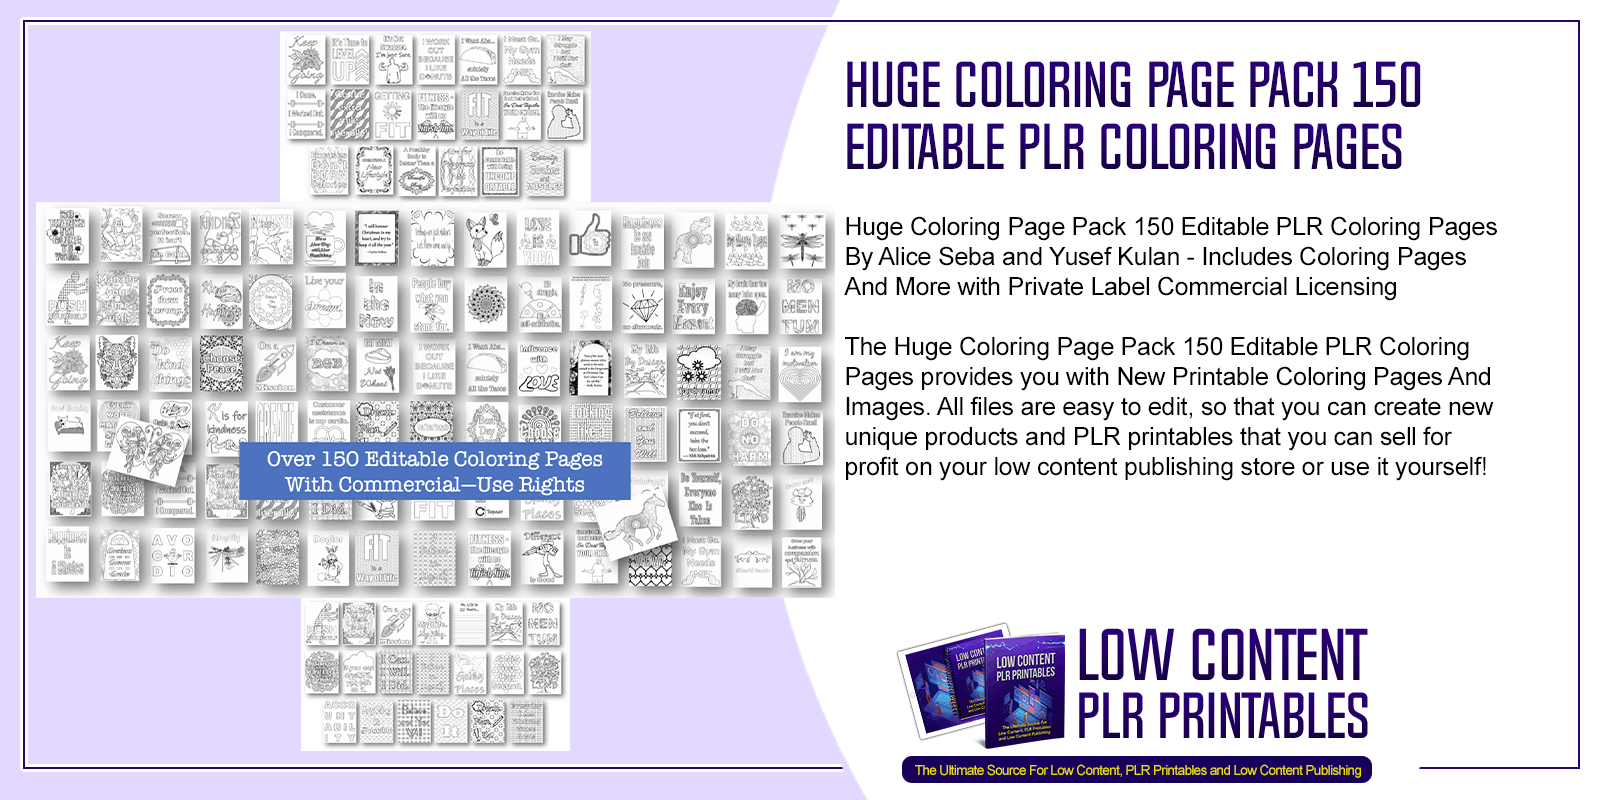 Huge Coloring Page Pack 150 Editable PLR Coloring Pages